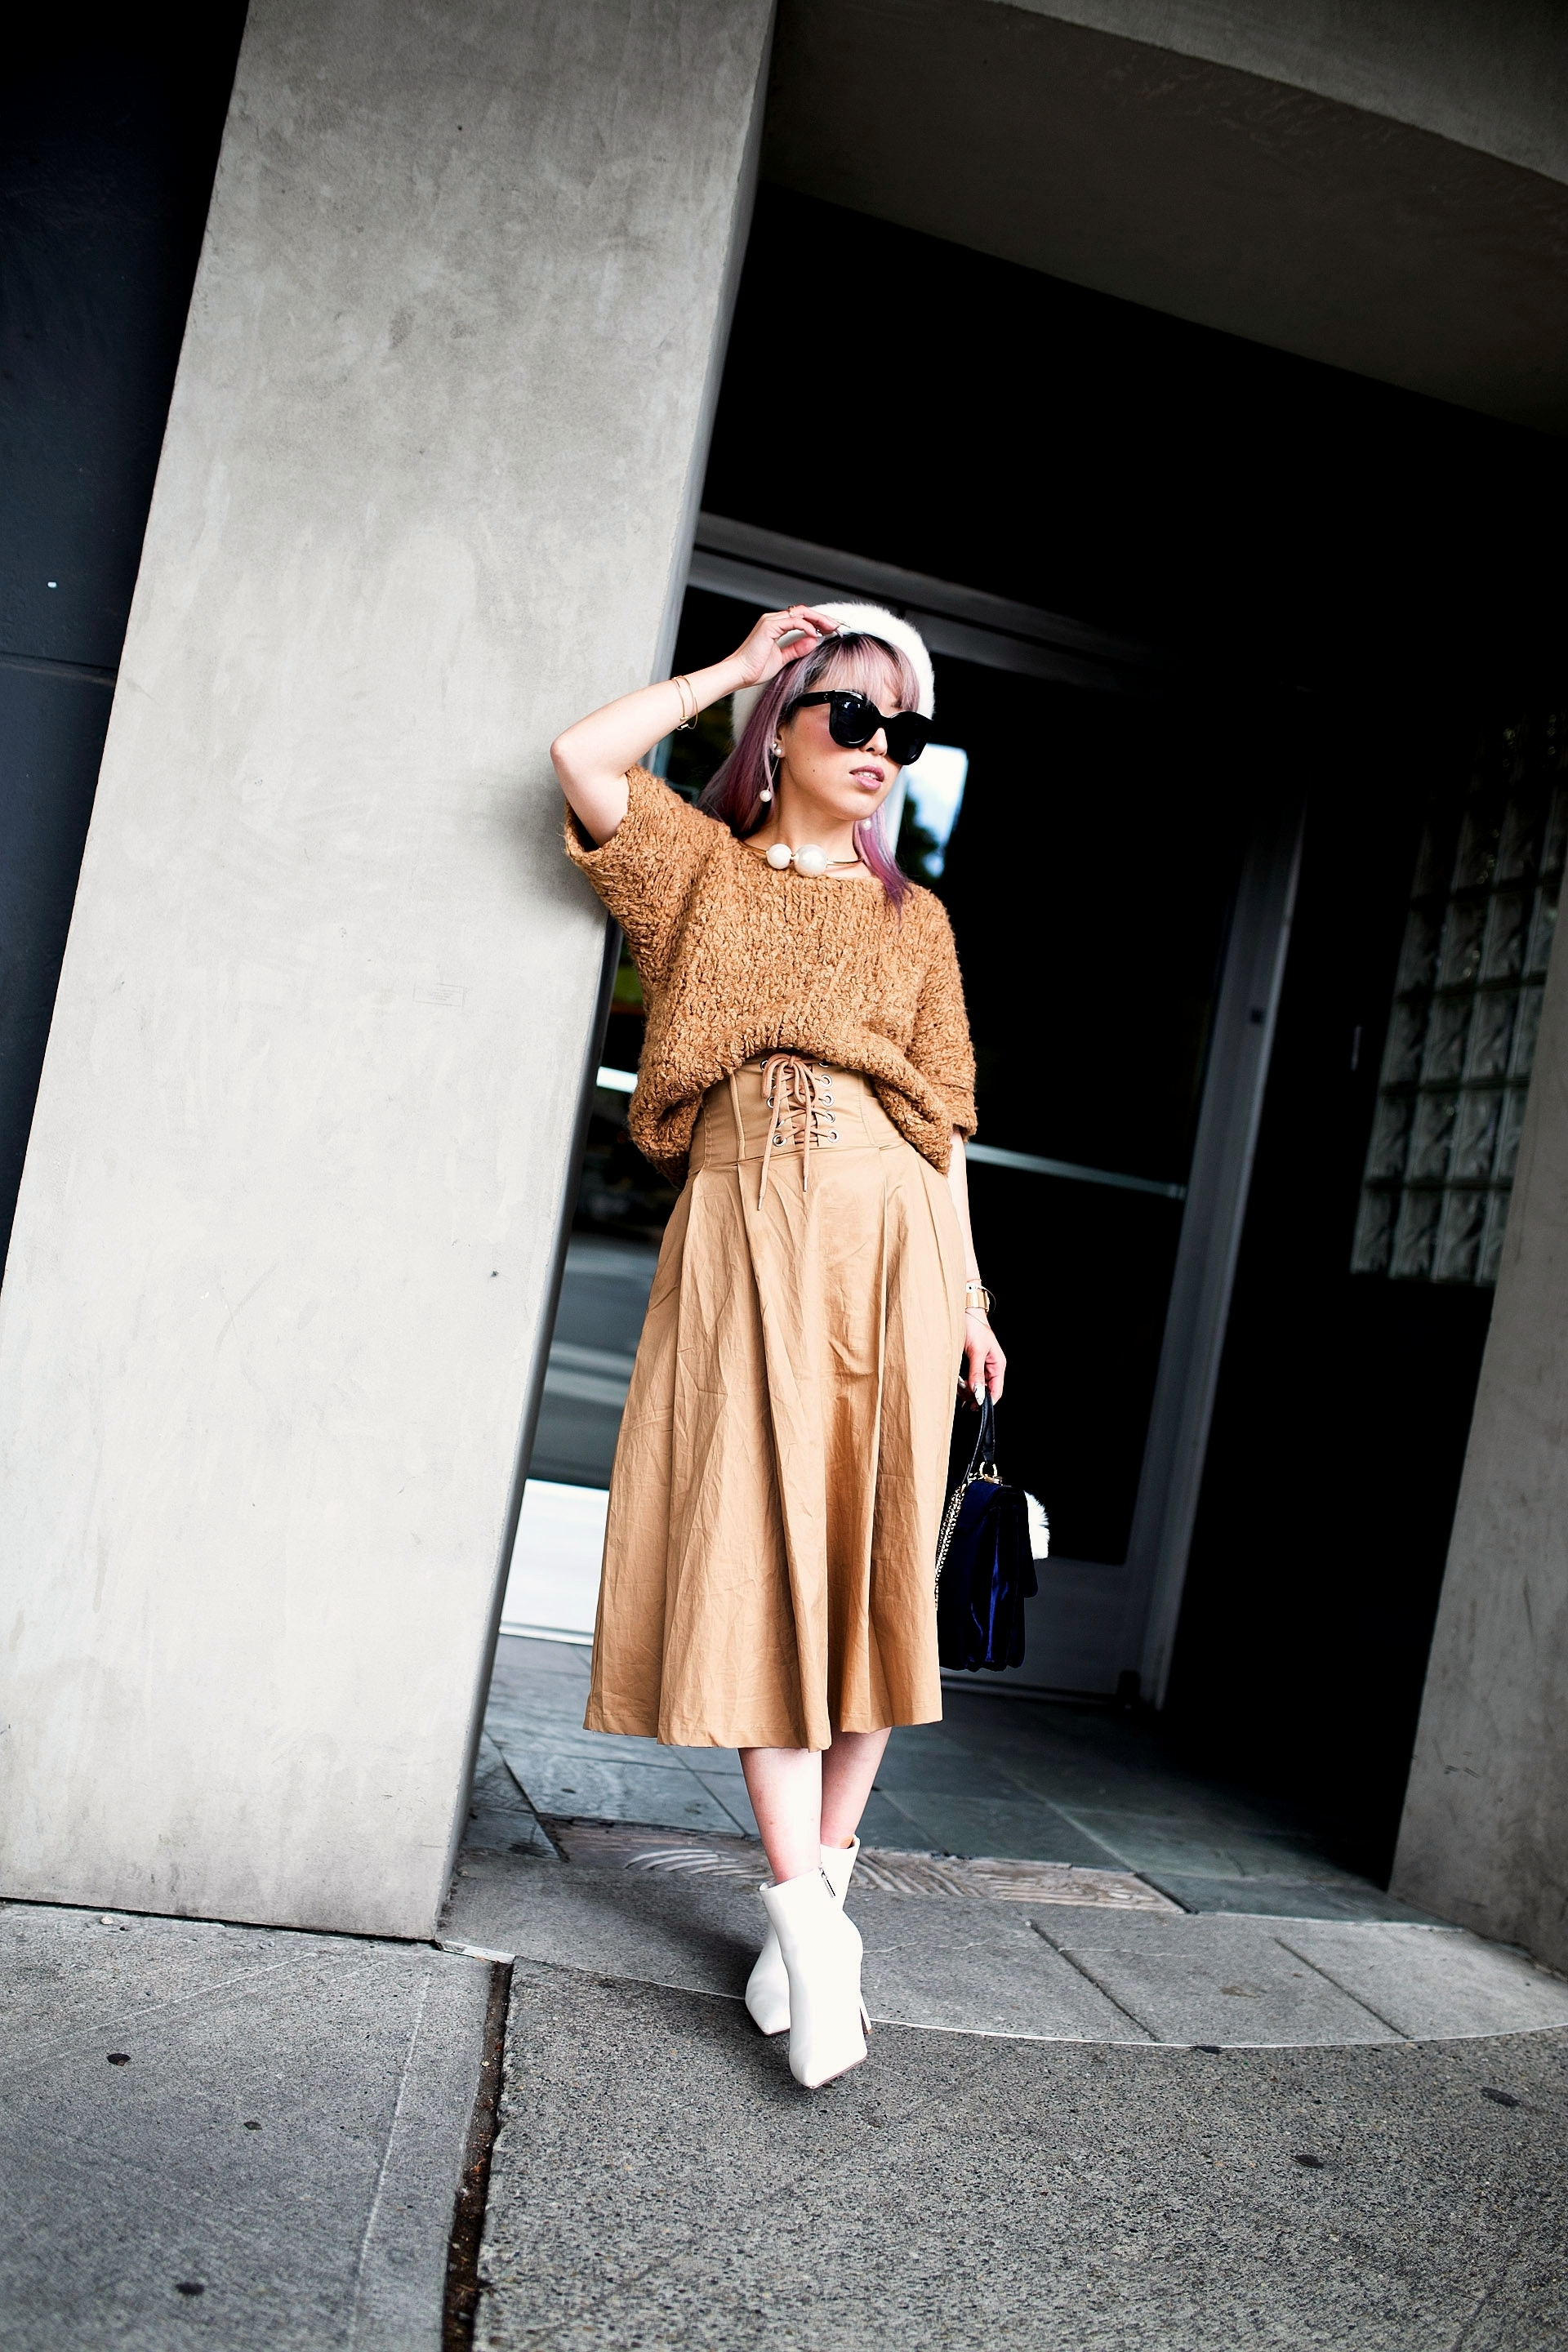 Forever 21 Fluffy White Beret, Express Pearl Collar Necklace, Thrifted Teddy Camel Top, H&M High-waisted camel midi skirt, zara velvet bag, Forever 21 White Ankle Boots, Aika's Love Closet, Seattle Fashion Style Blogger, Japanese, pink hair, street style, petite fashion  2